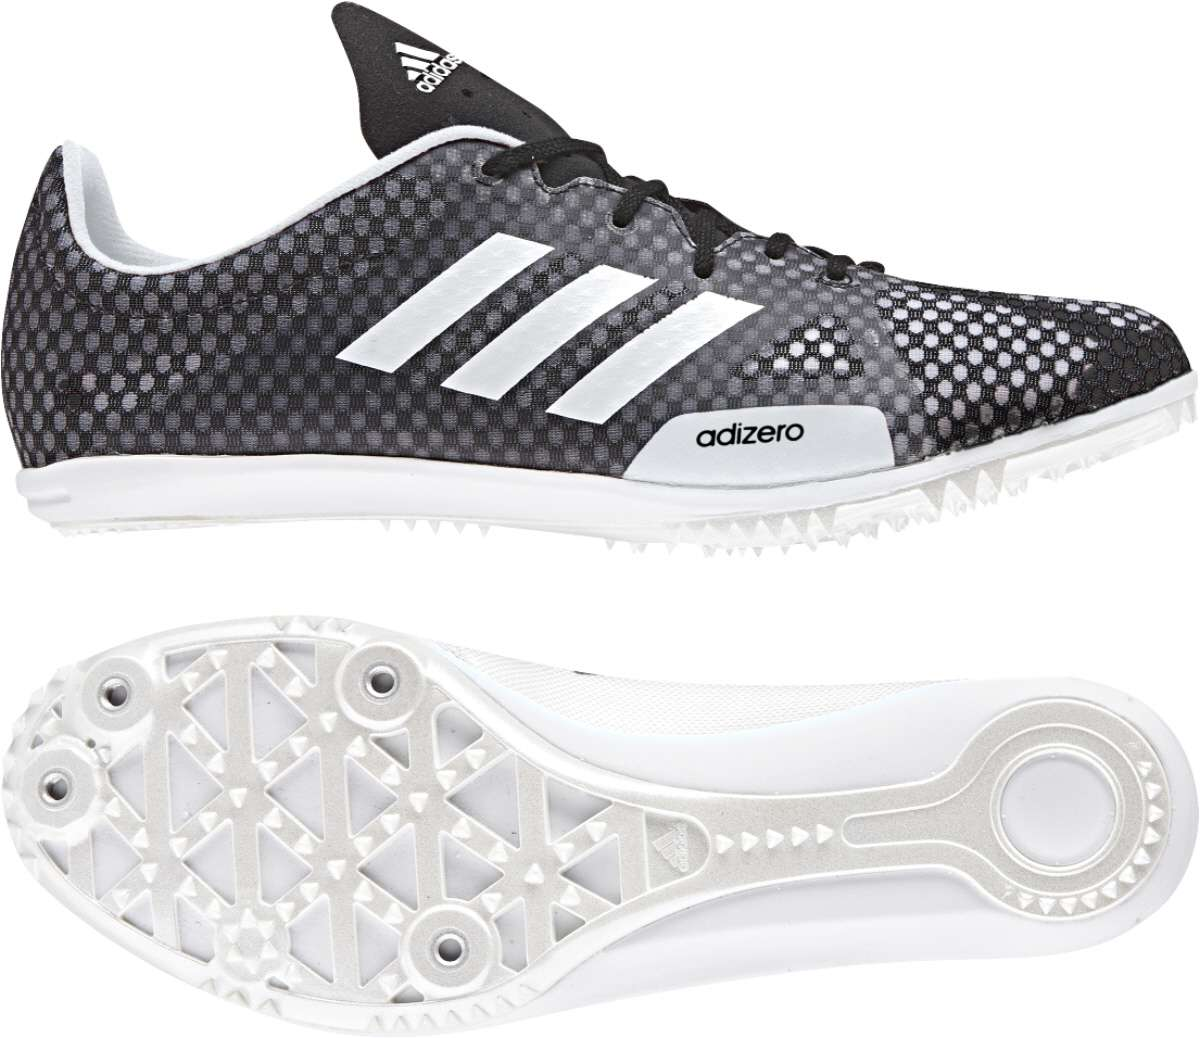 uk store look out for 2018 shoes adidas adizero ambition 4 Damen Spikes Schuhe